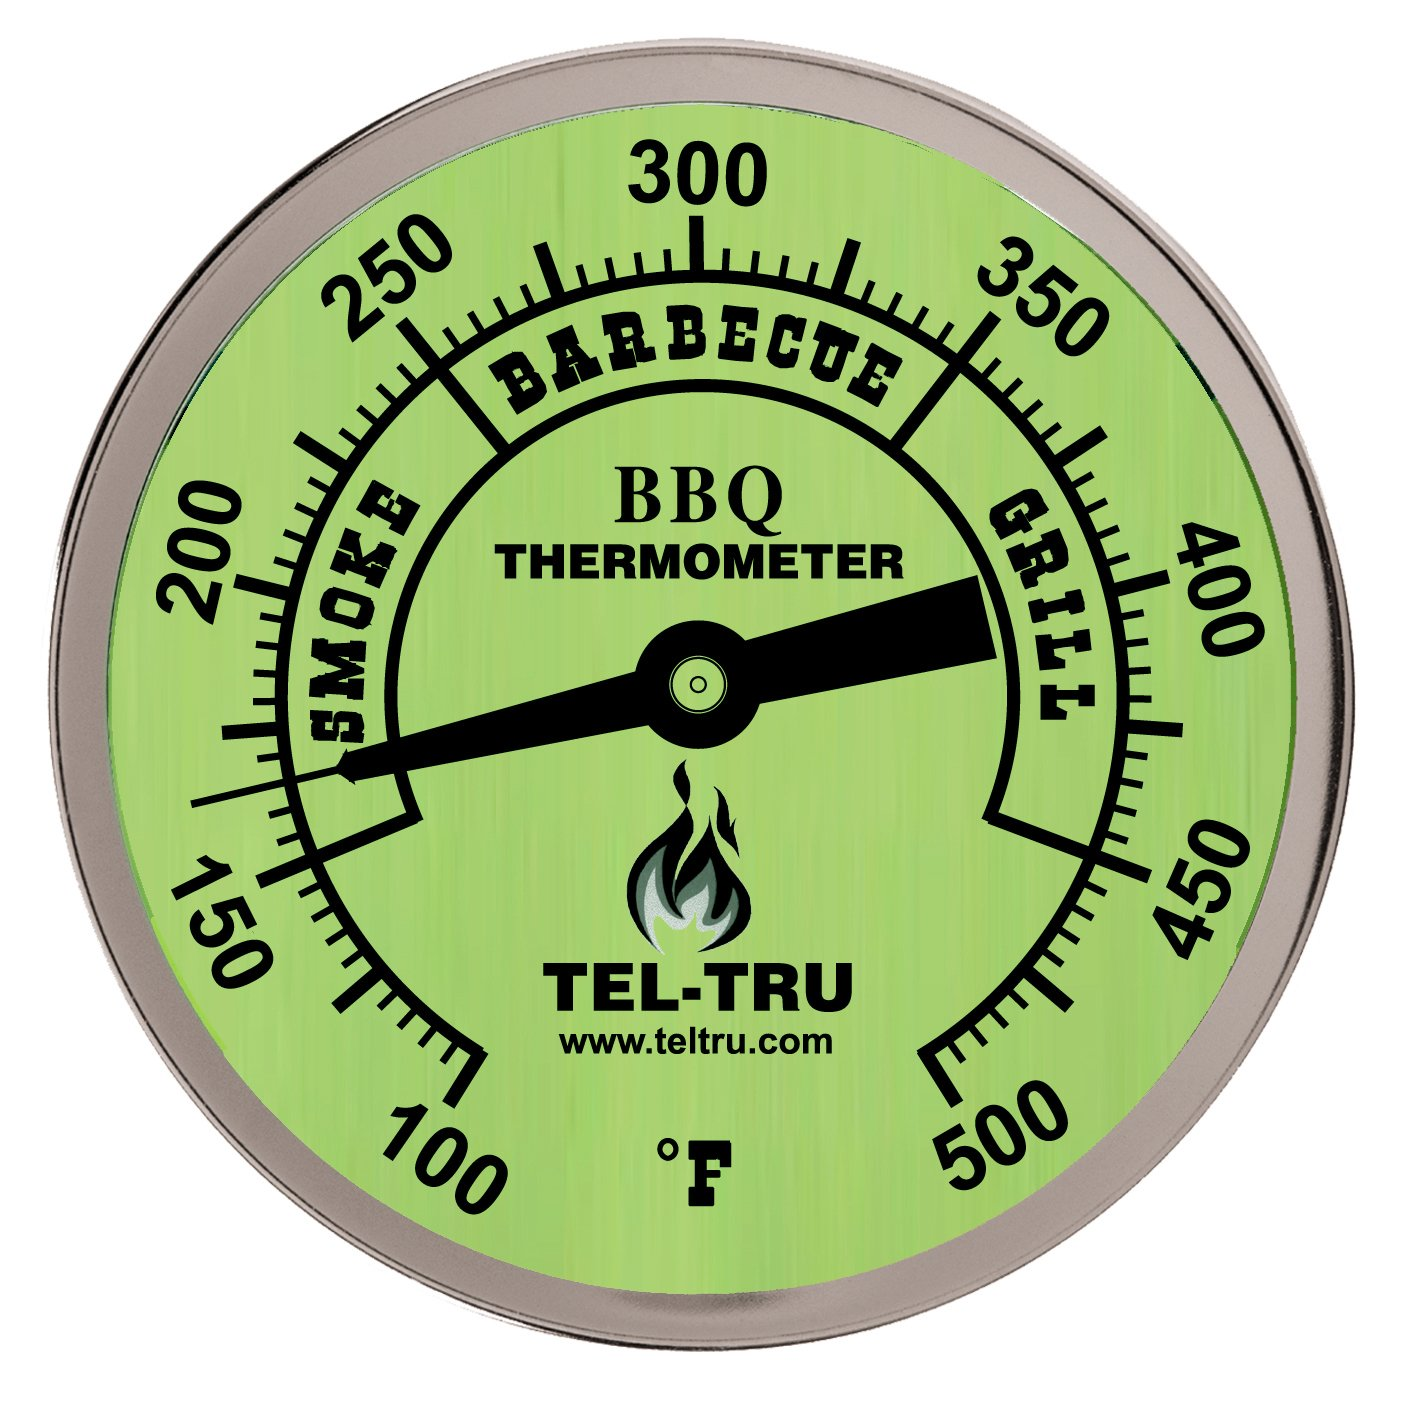 -Tru BQ300 Barbecue Thermometer, 3 inch glow dial with zones, 4 inch stem, 100/500 degrees F